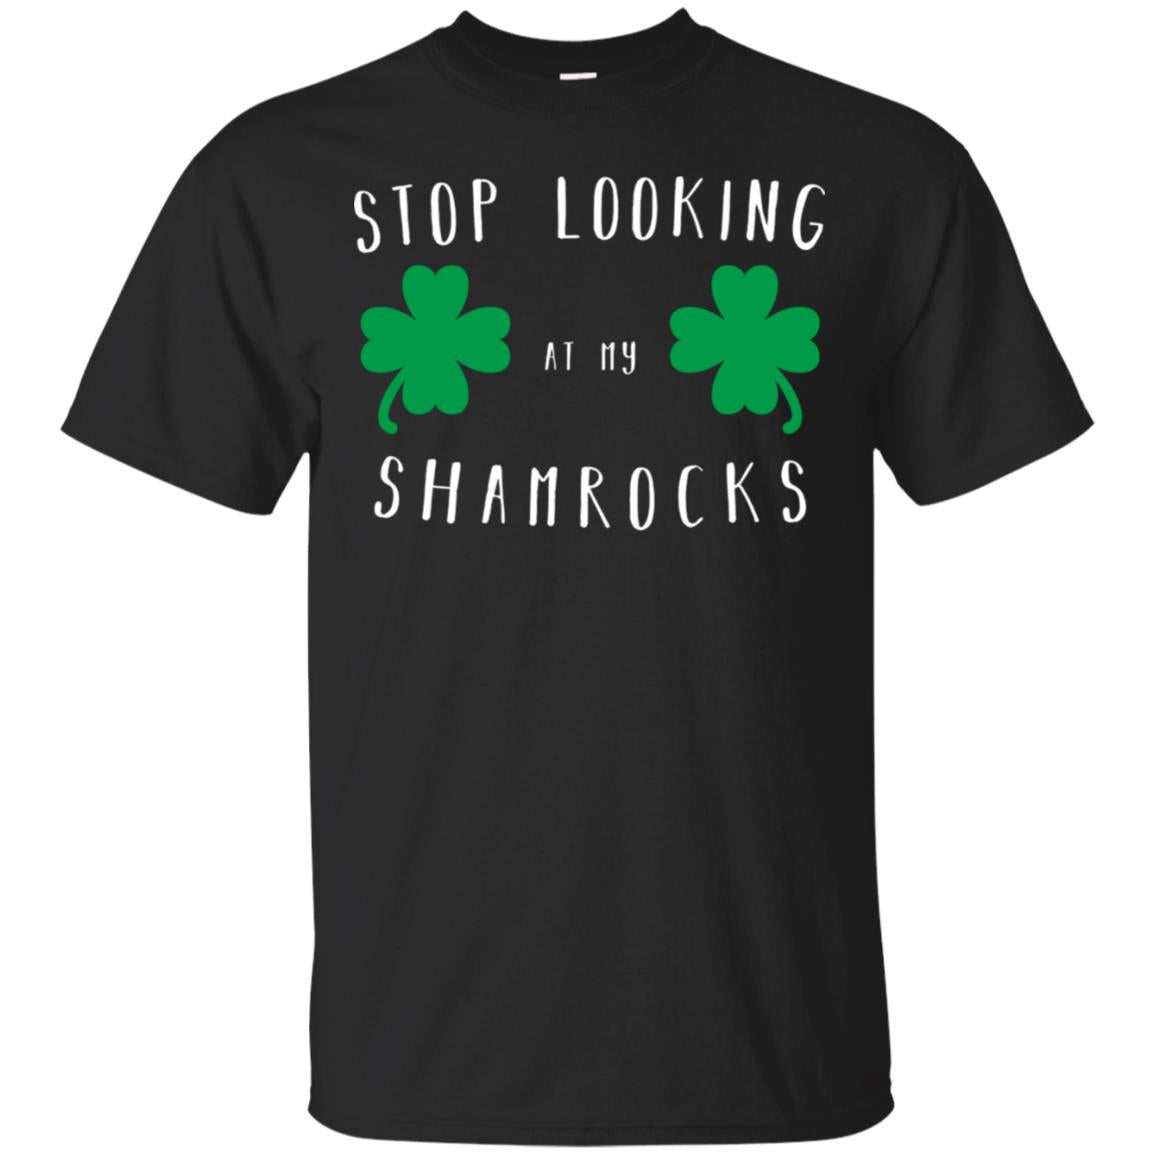 Stop looking at my shamrocks - Funny Saint Paddys Day Shirt 99promocode